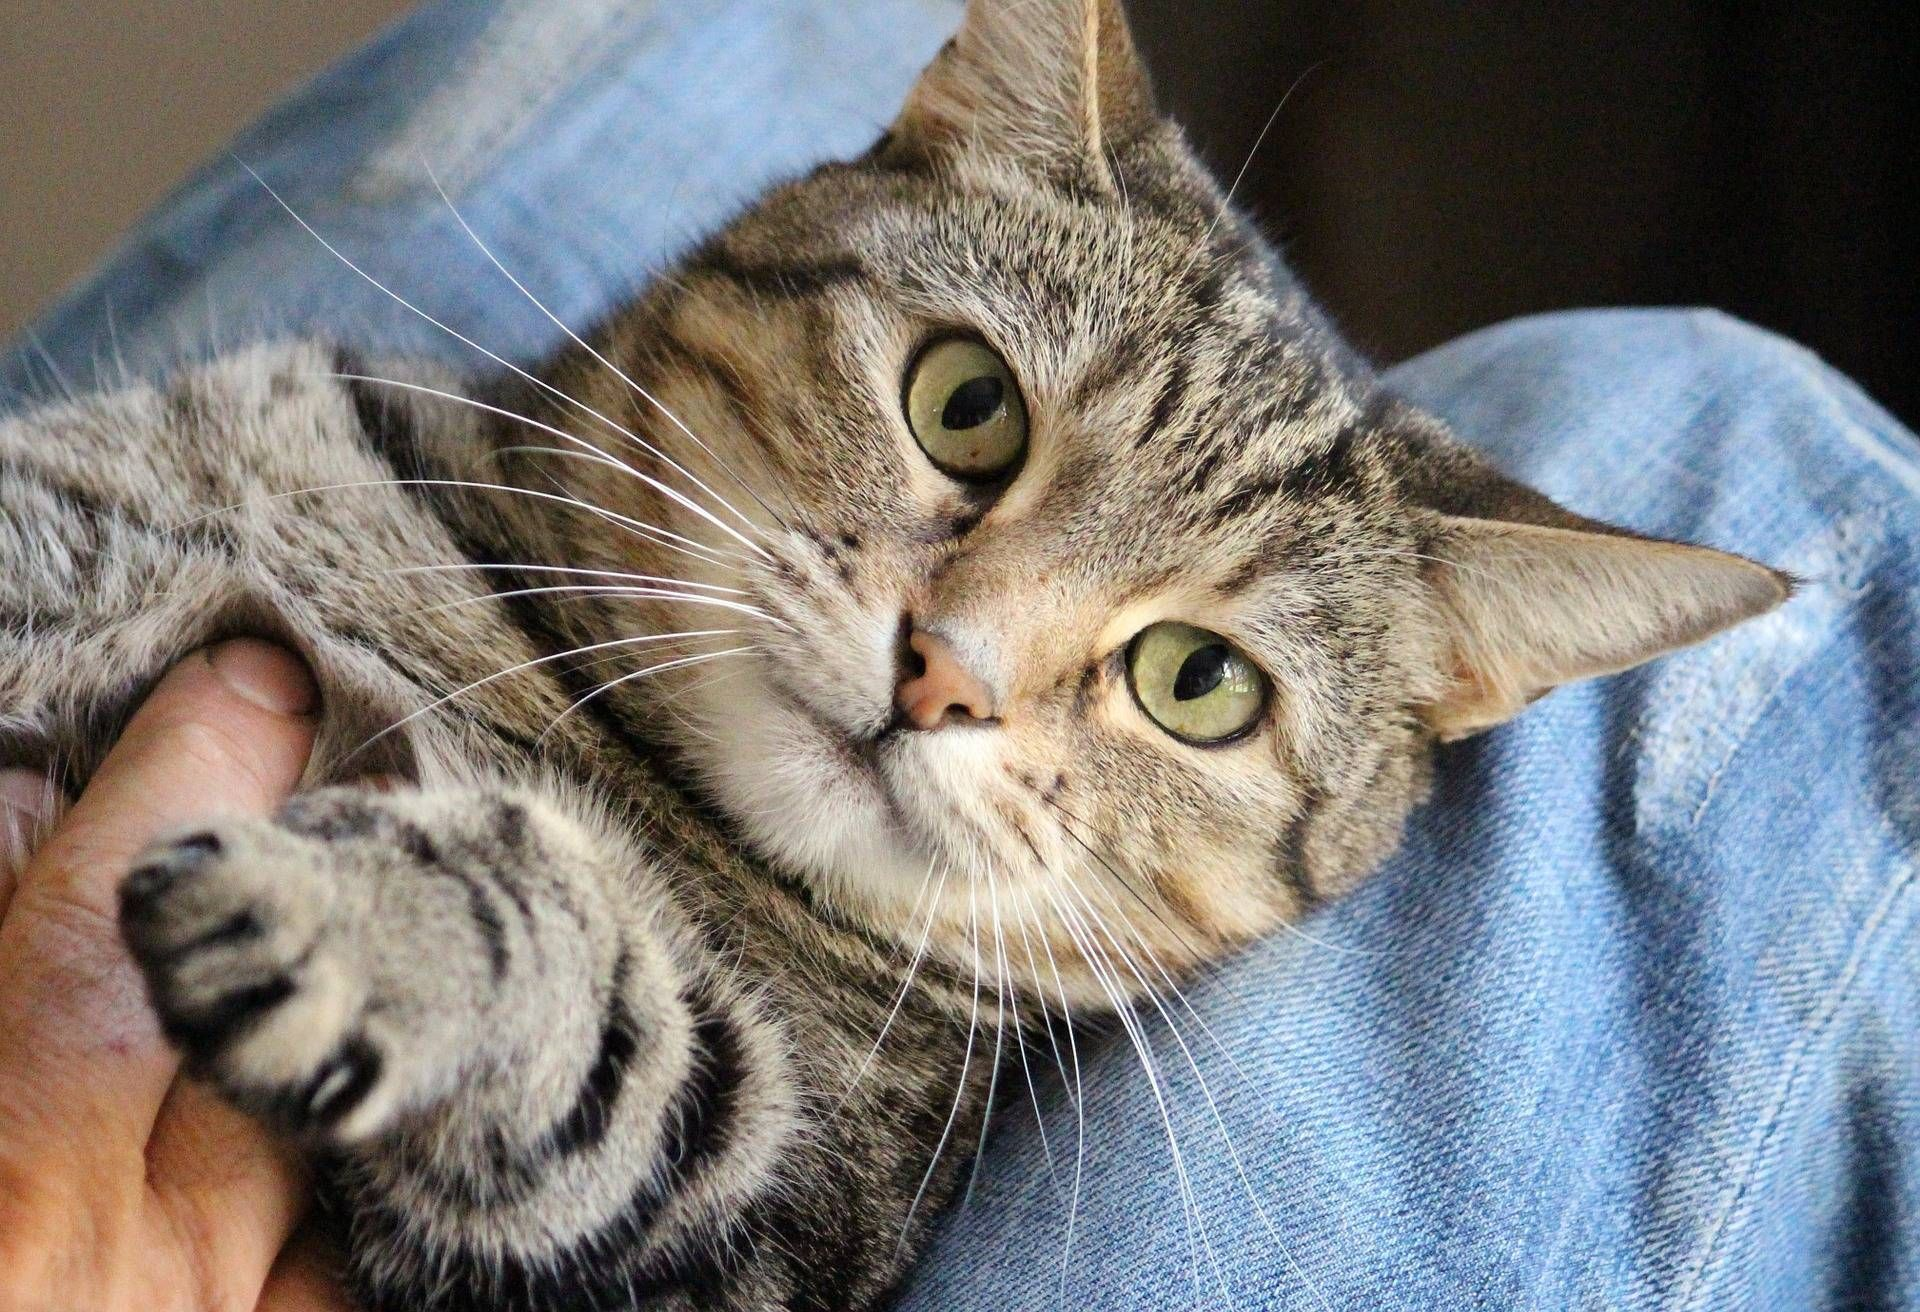 Can Cats Improve Your Mental Wellbeing Katzenworld Why Do Cats Purr Cat Facts Cat Purr